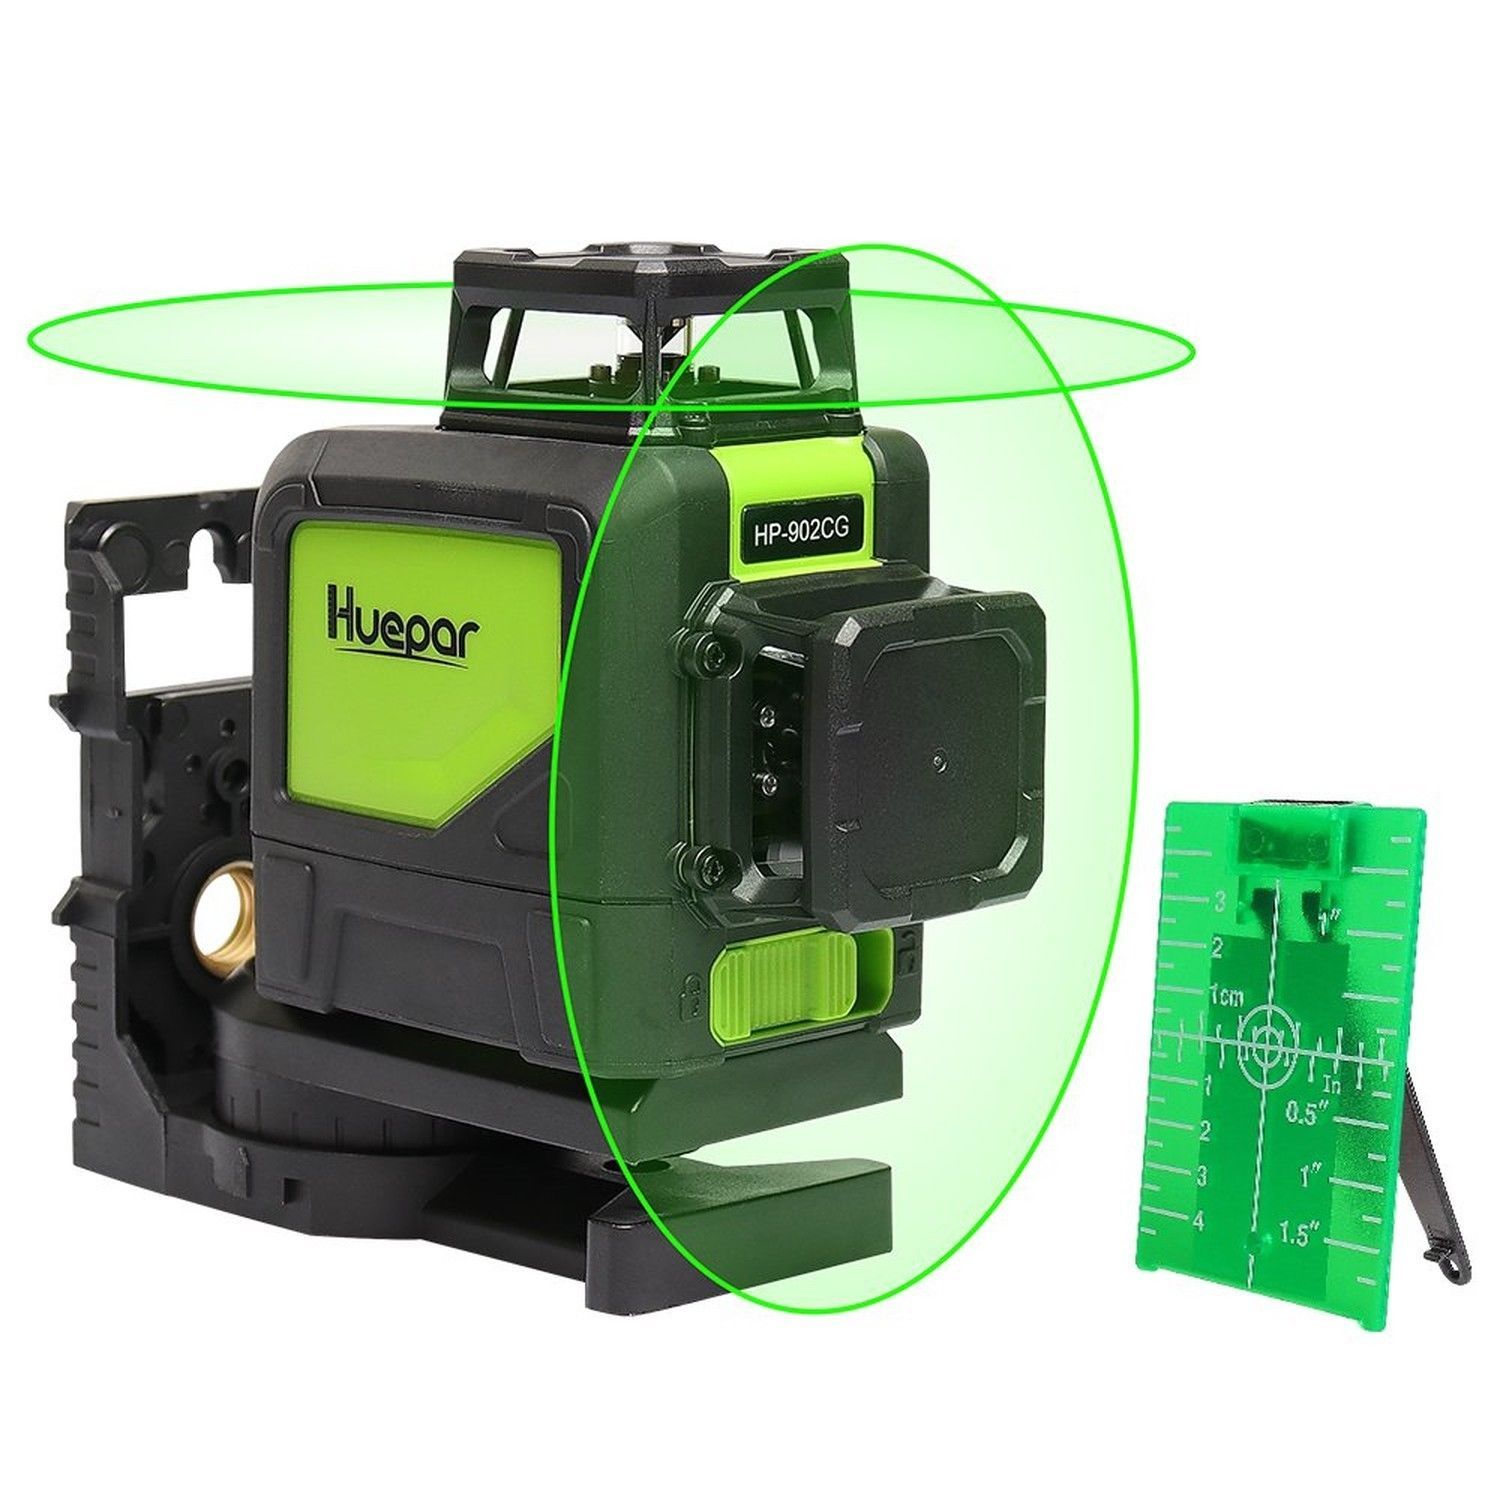 Huepar Self Leveling 360 Laser Level Mute Levelsure 902cg Green Beam 150 Ft Ebay Laser Levels Laser Vertical